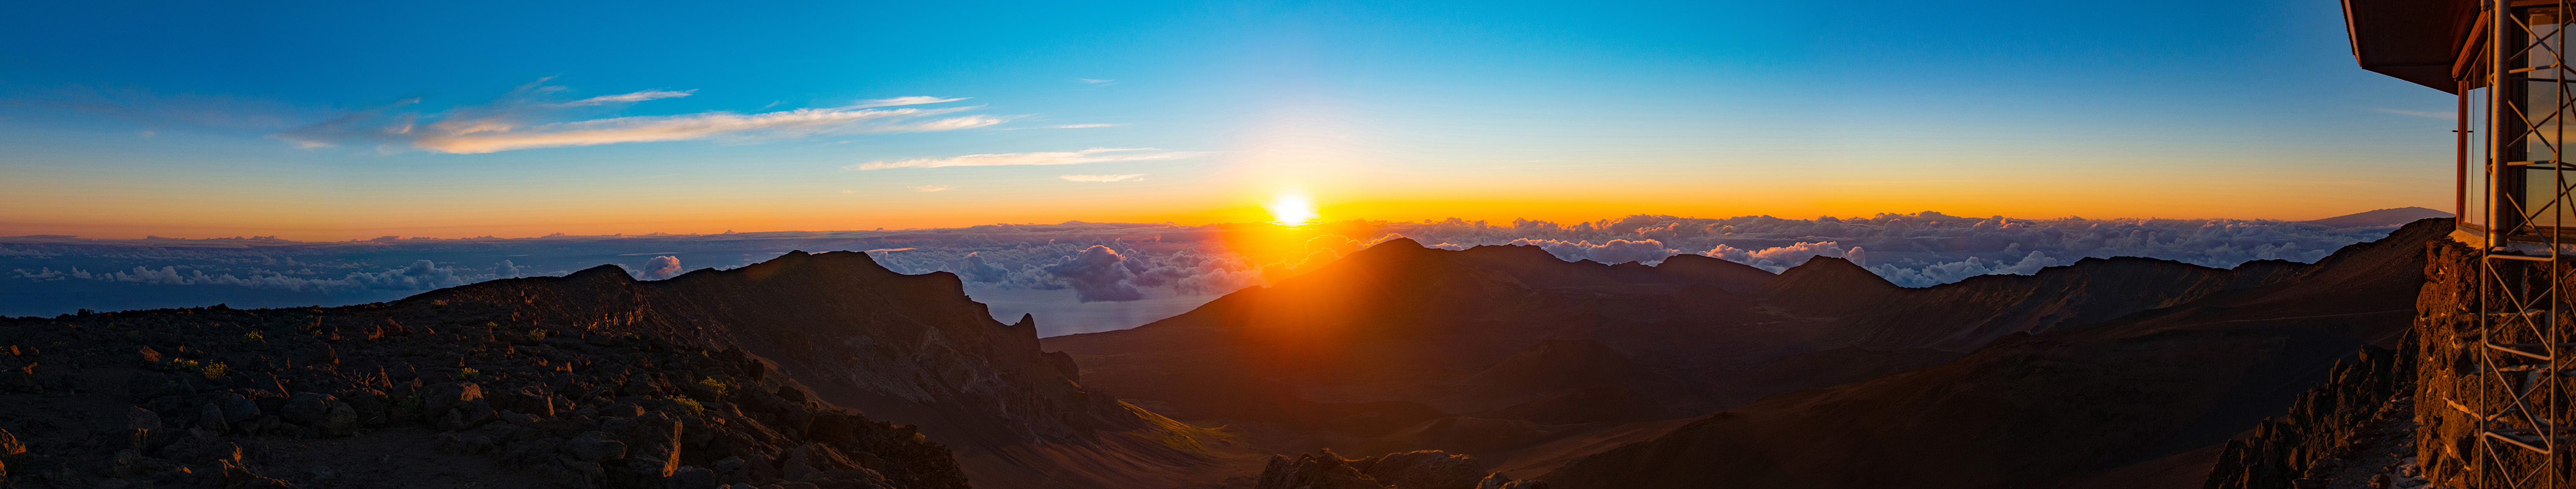 Sunrise on Haleakala no2-21X4-noborder-Small4Web